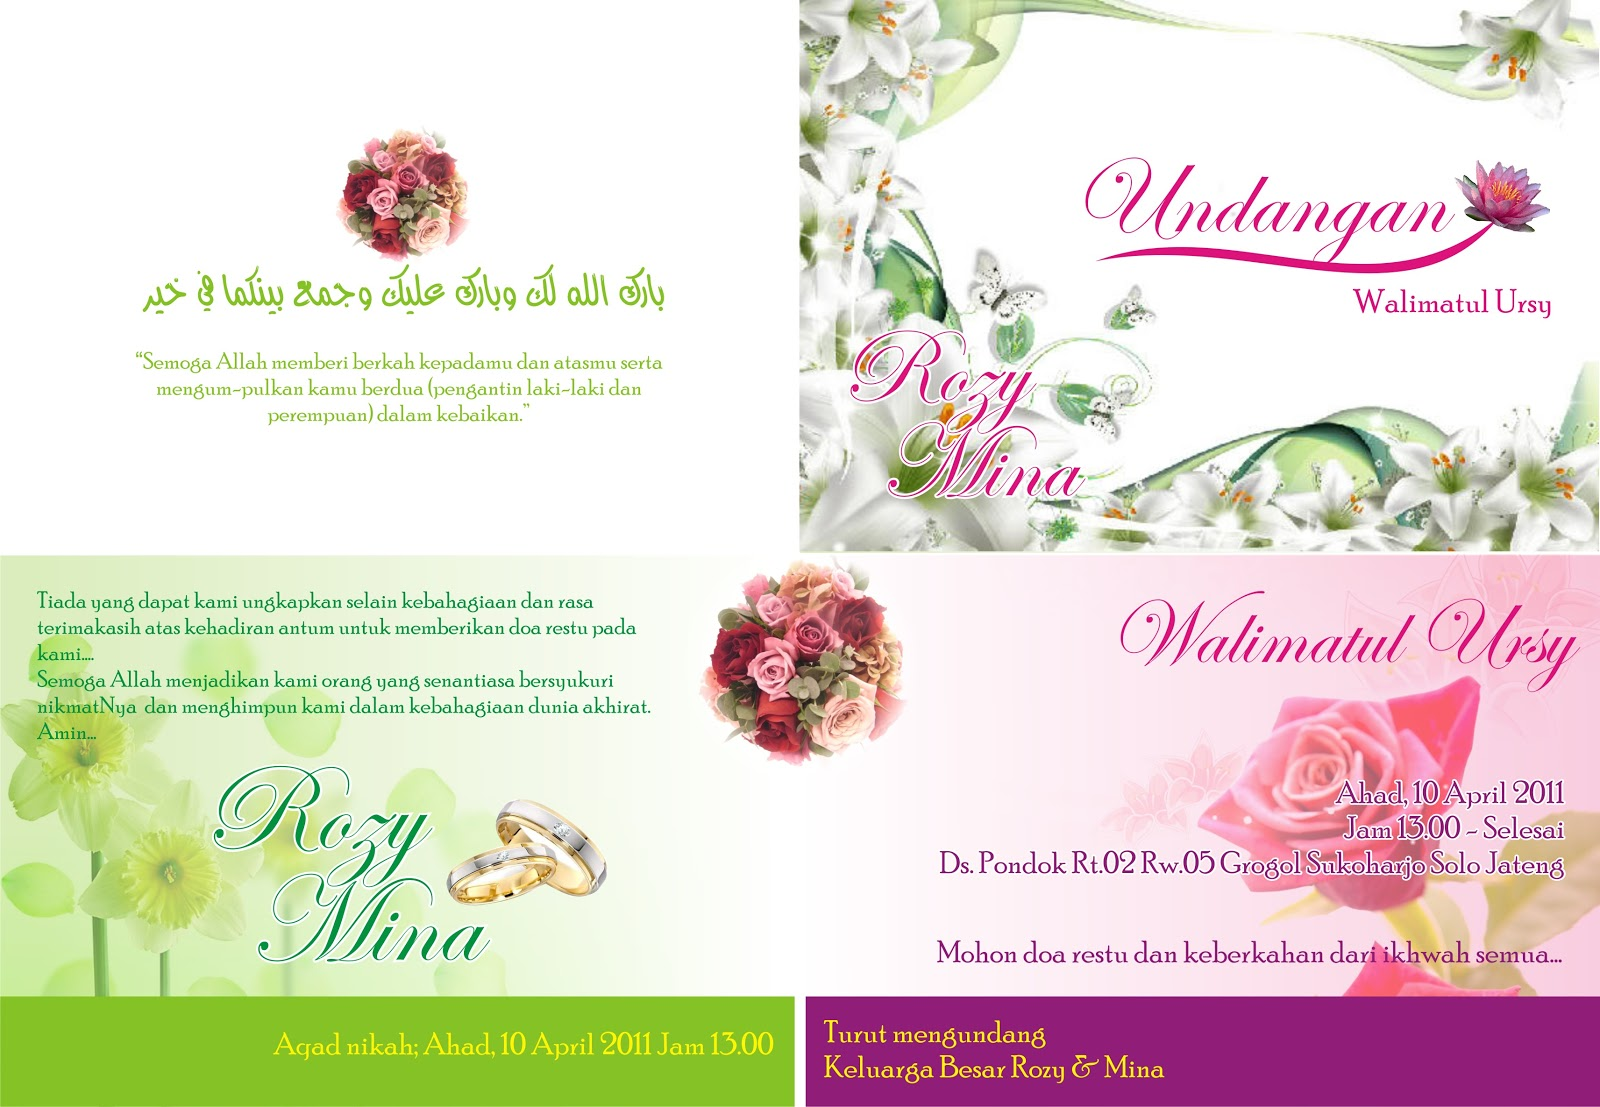 Design Islamic Undangan | Joy Studio Design Gallery - Best Design